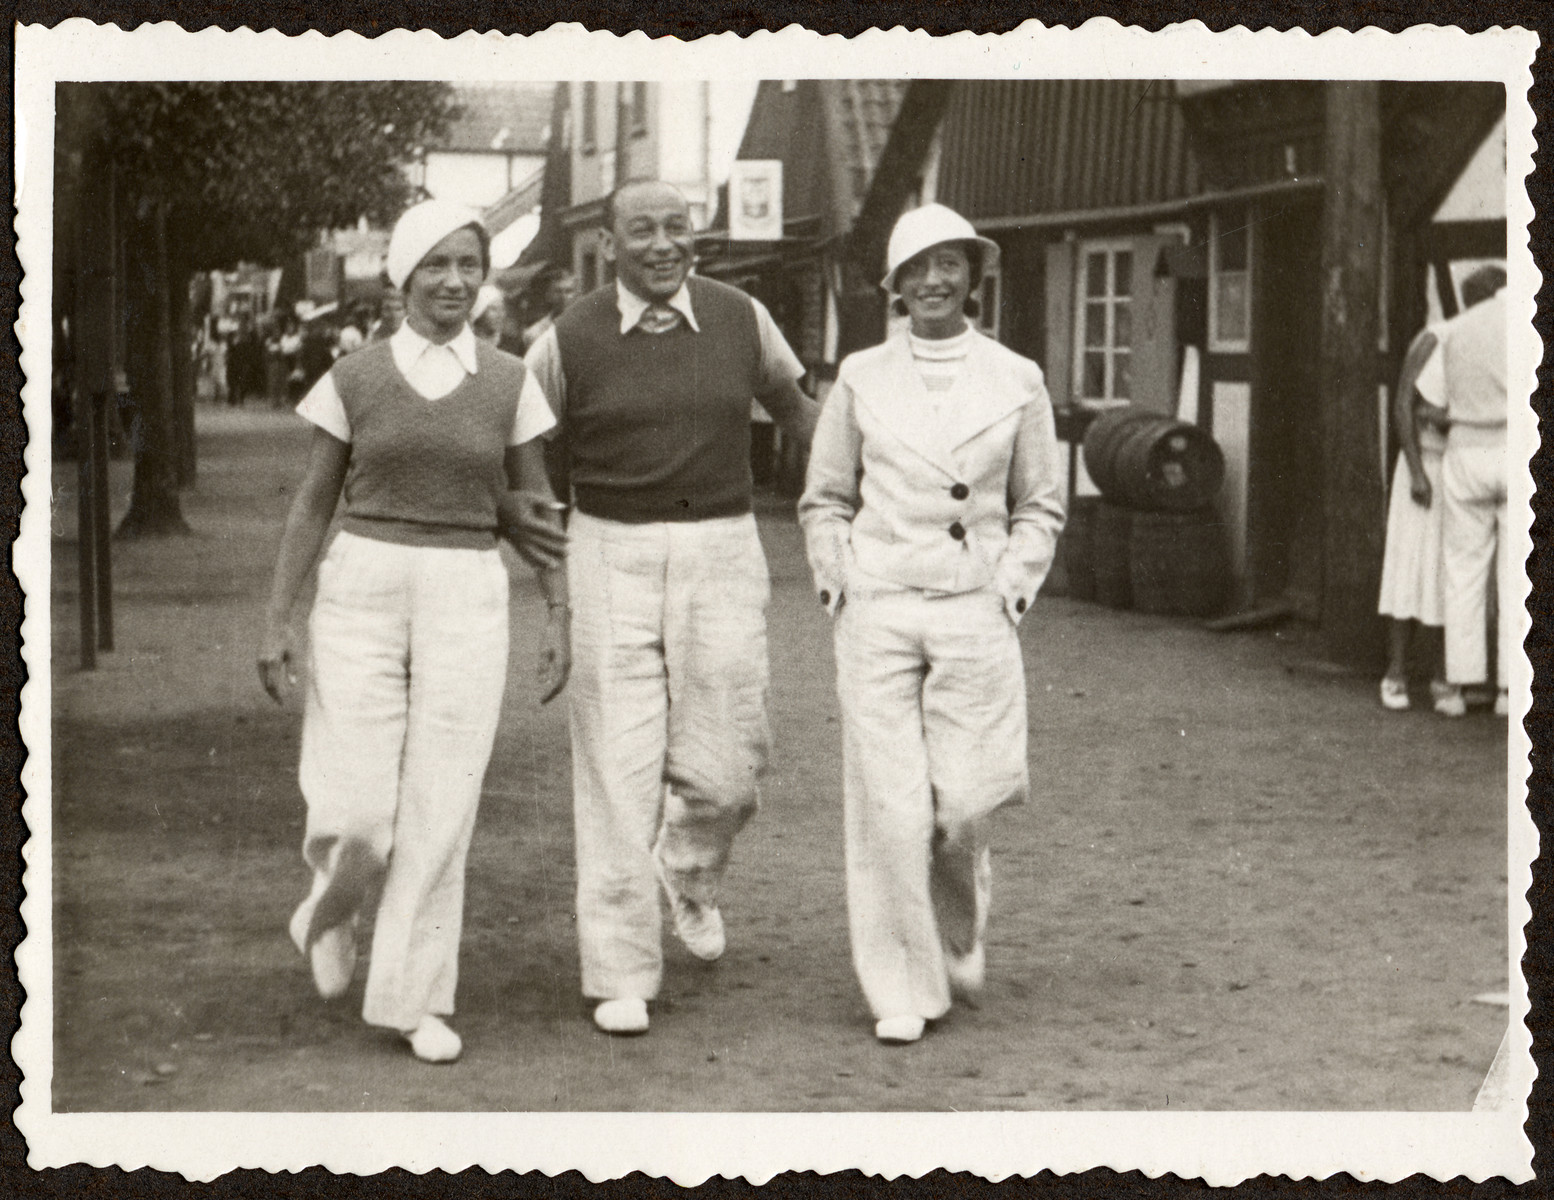 Jerzy and Nadzieja Klein walk down the street of a small town with a friend while on vacation in prewar Poland.